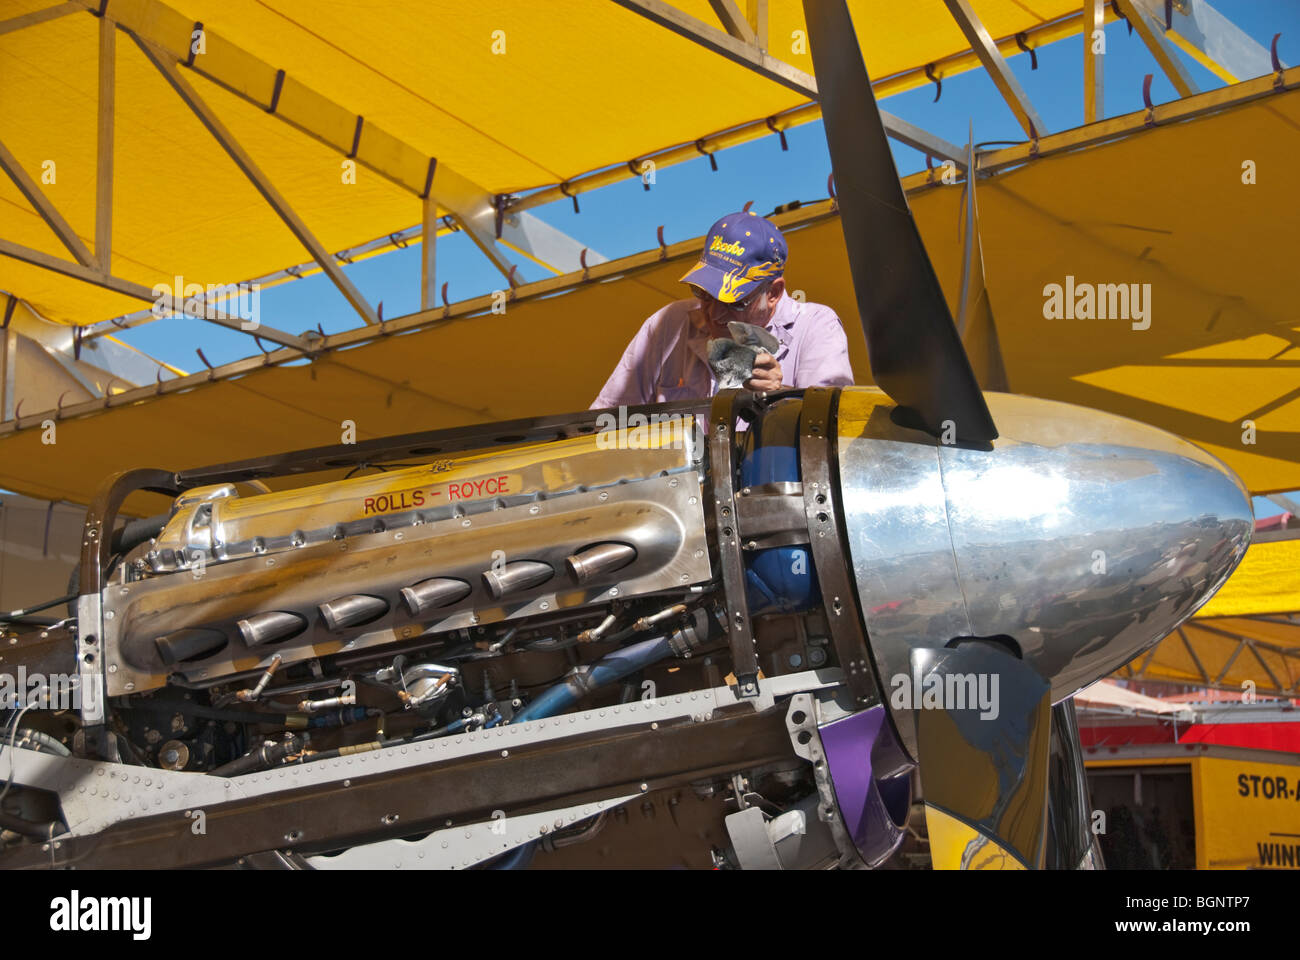 Nevada Reno Air Races P-51 Mustang race airplane mechanic in pits working on 12 cylinder Rolls - Royce engine - Stock Image